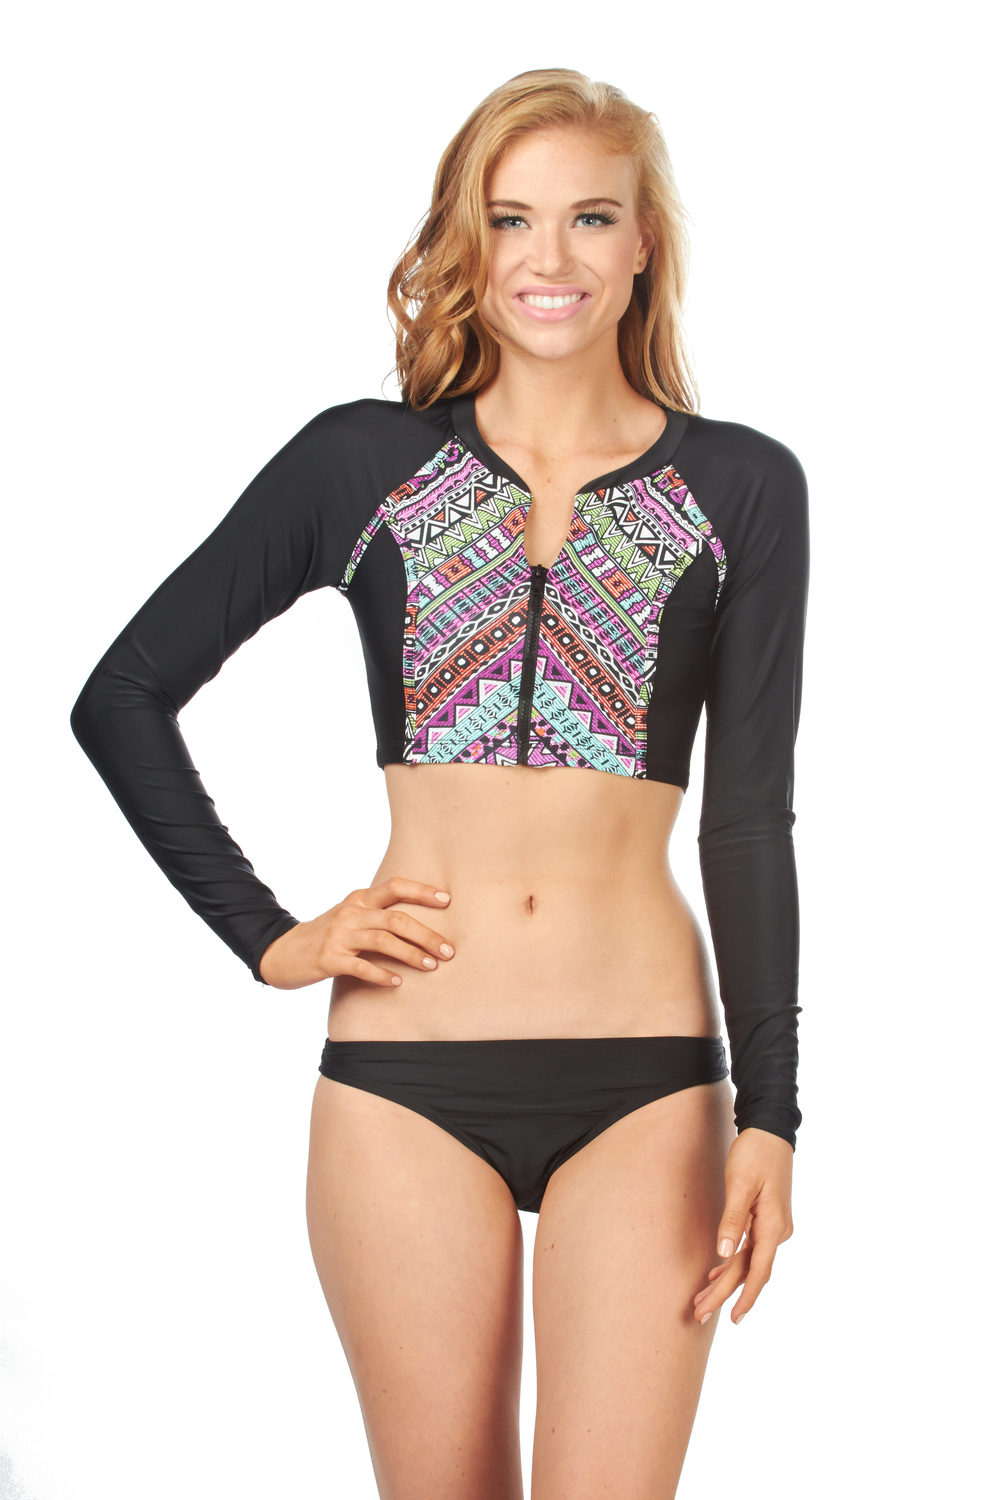 BL5W763 - DON'T WORRY BE STRAPPY CROPPED RASHGUARD $42 BL5Y391 - BLACK SKIMPY HIPSTER $32